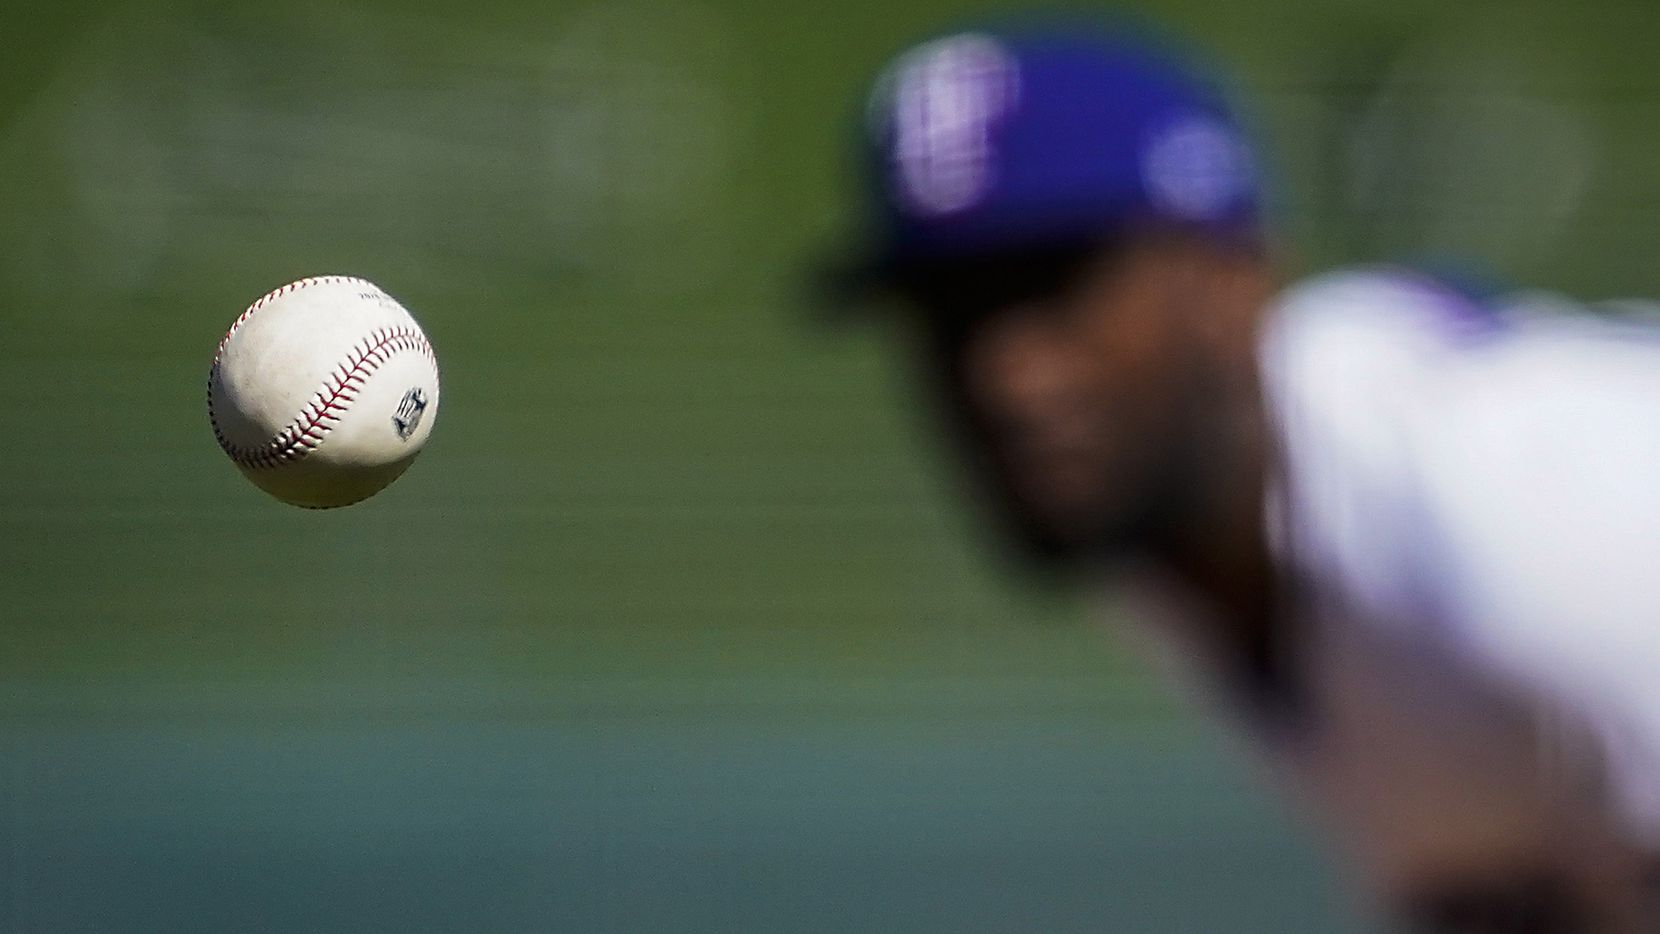 Texas Rangers pitcher Taylor Hearn pitches during the first inning of a spring training game against the Kansas City Royals at Surprise Stadium on Tuesday, Feb. 25, 2020, in Surprise, Ariz.